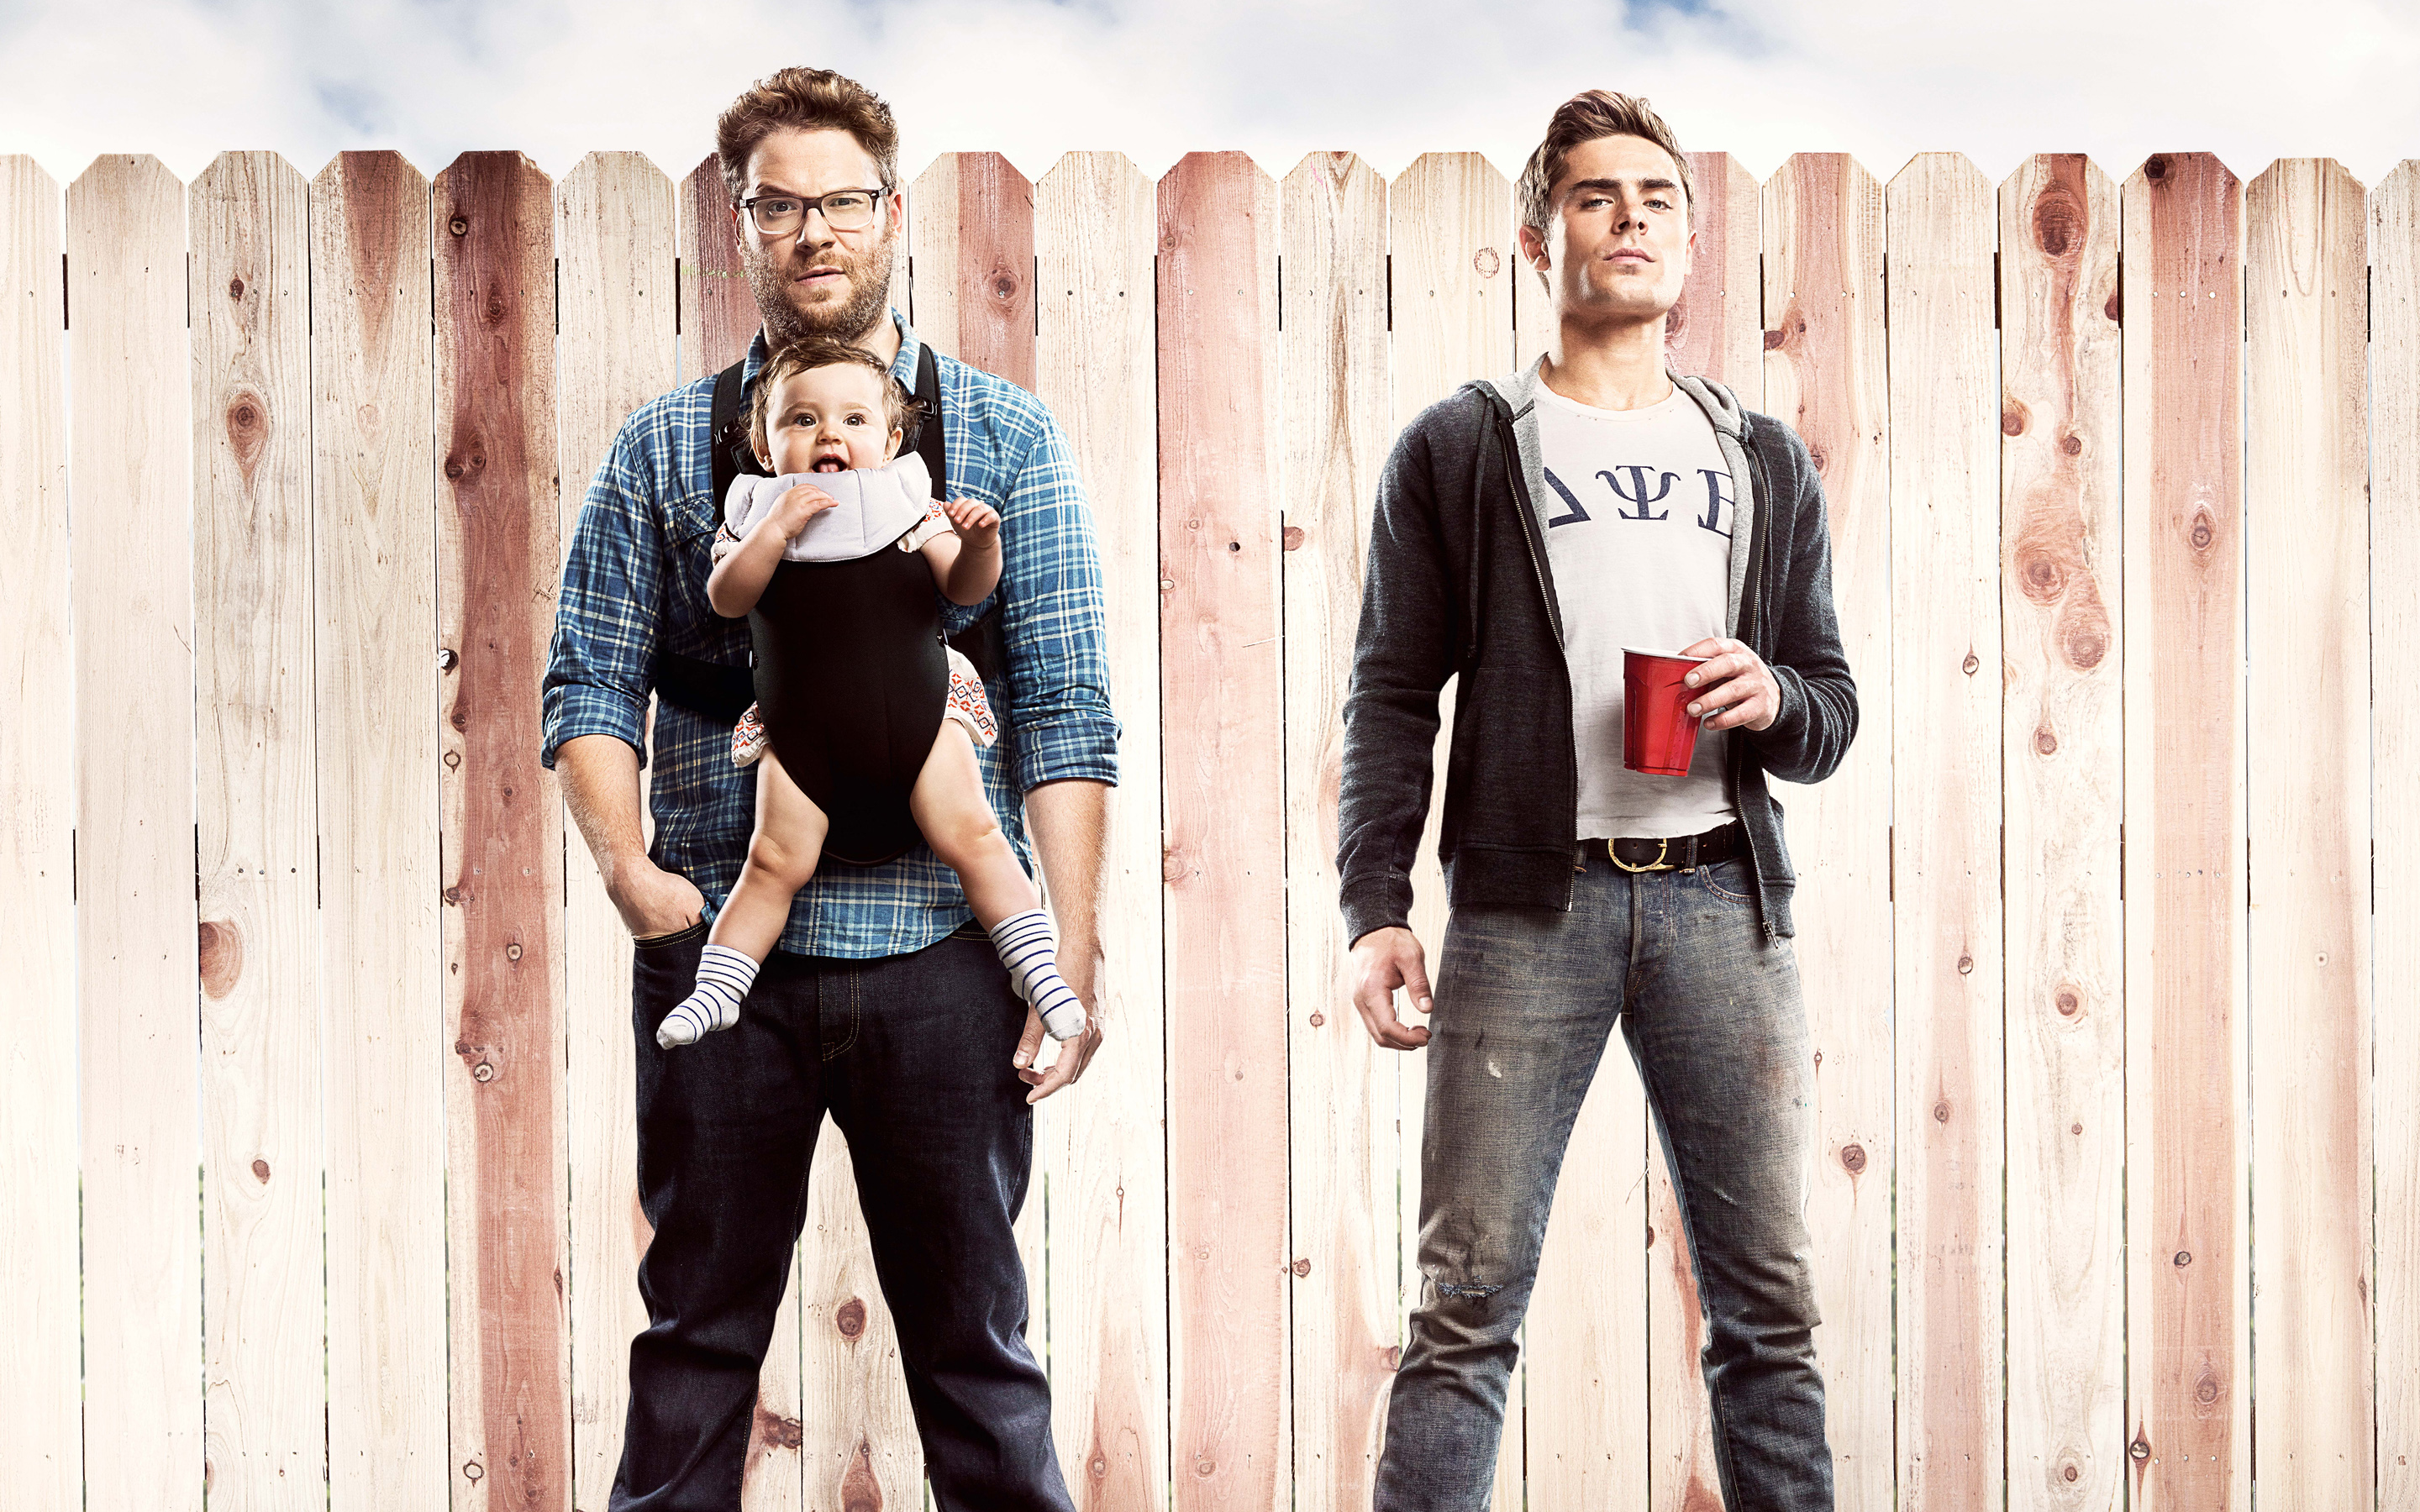 Neighbors 2014 Movie 2918.84 Kb